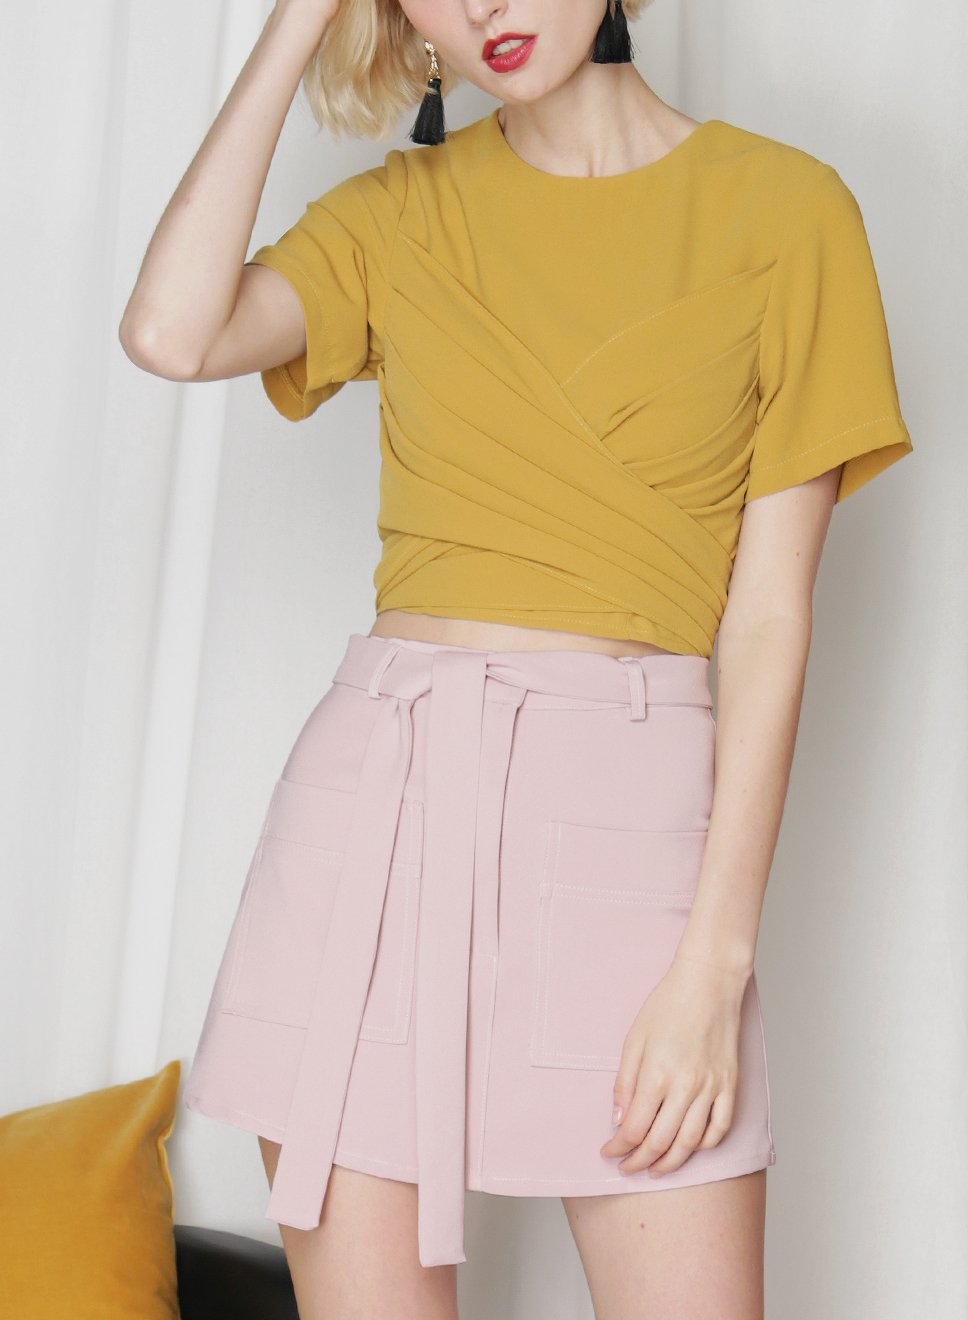 ELEVATE Double Pocket Skorts (Mauve) at $ 26.50 only sold at And Well Dressed Online Fashion Store Singapore